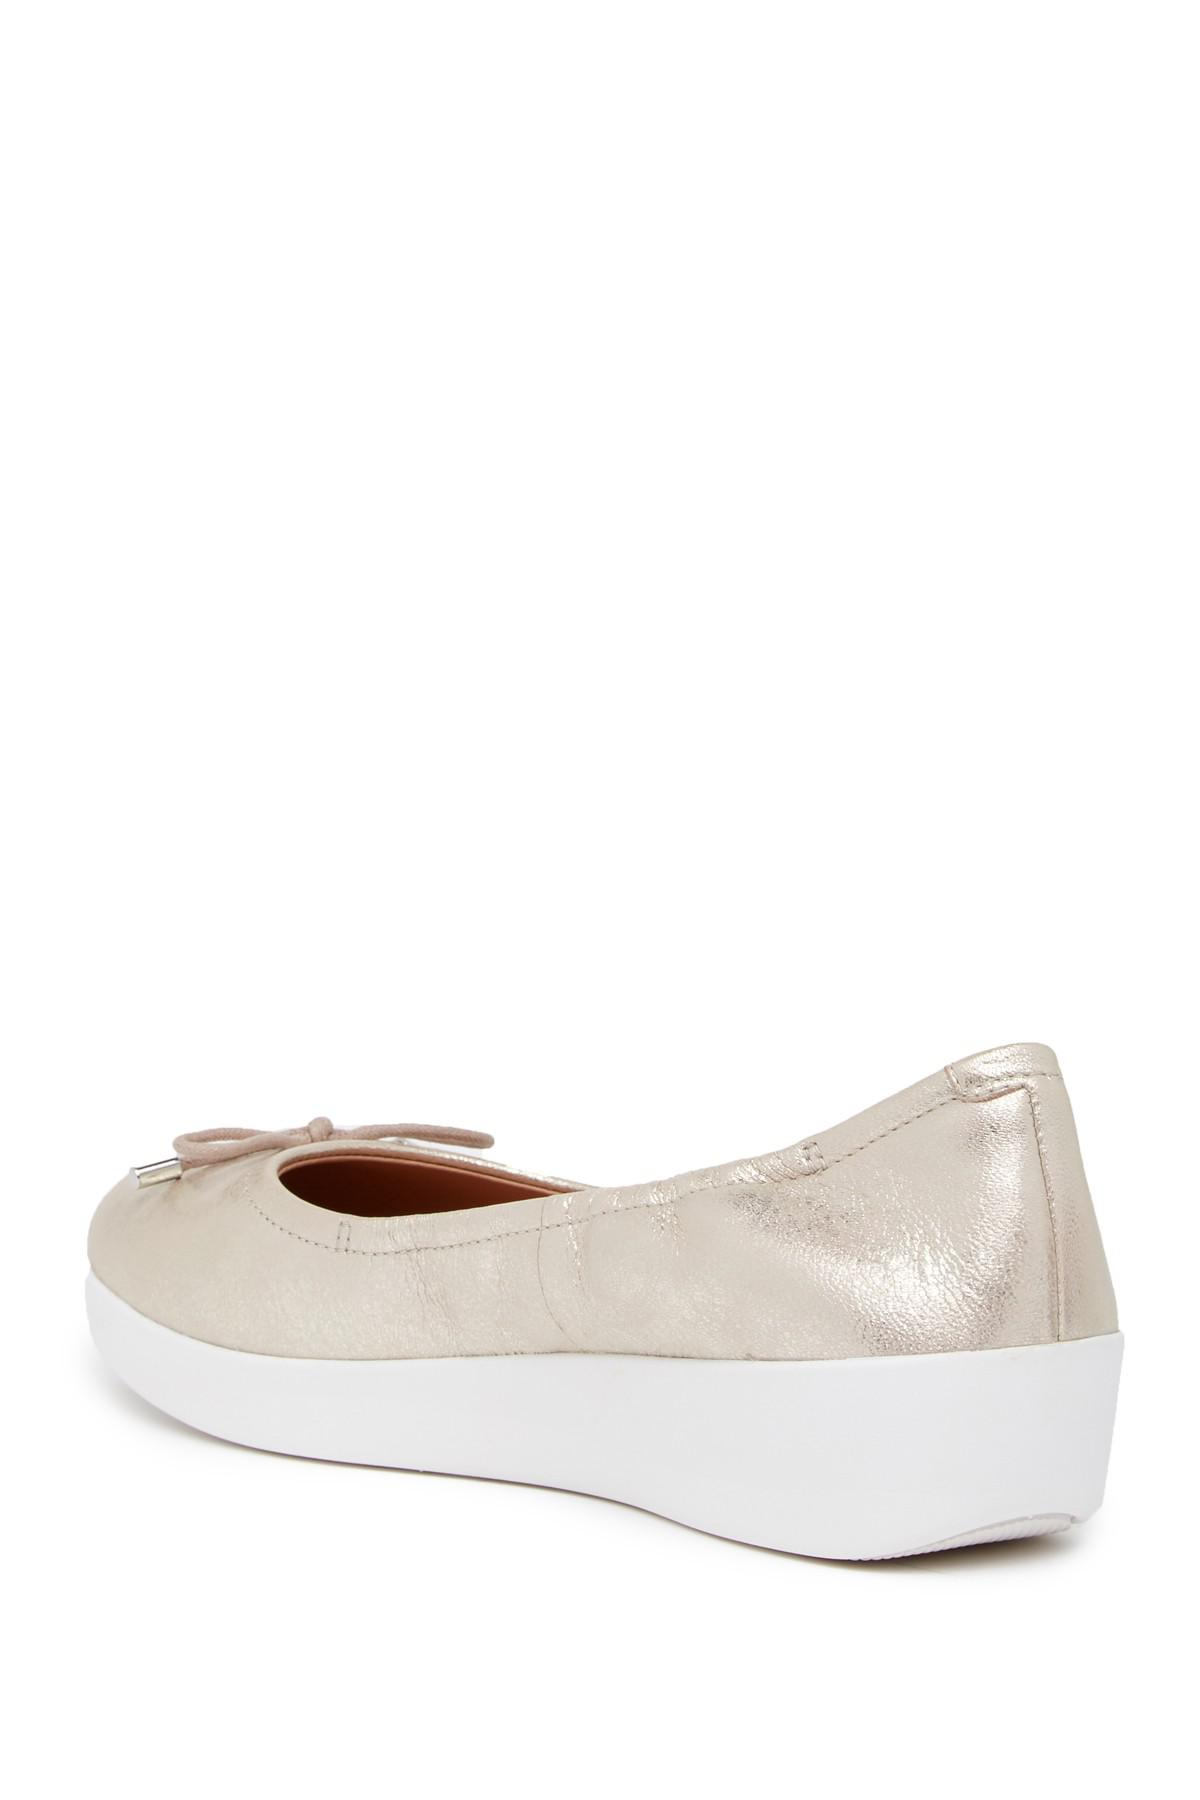 Fitflop Superbendy Metallic Leather Ballerina Slip-On Shoe nACoZhR89